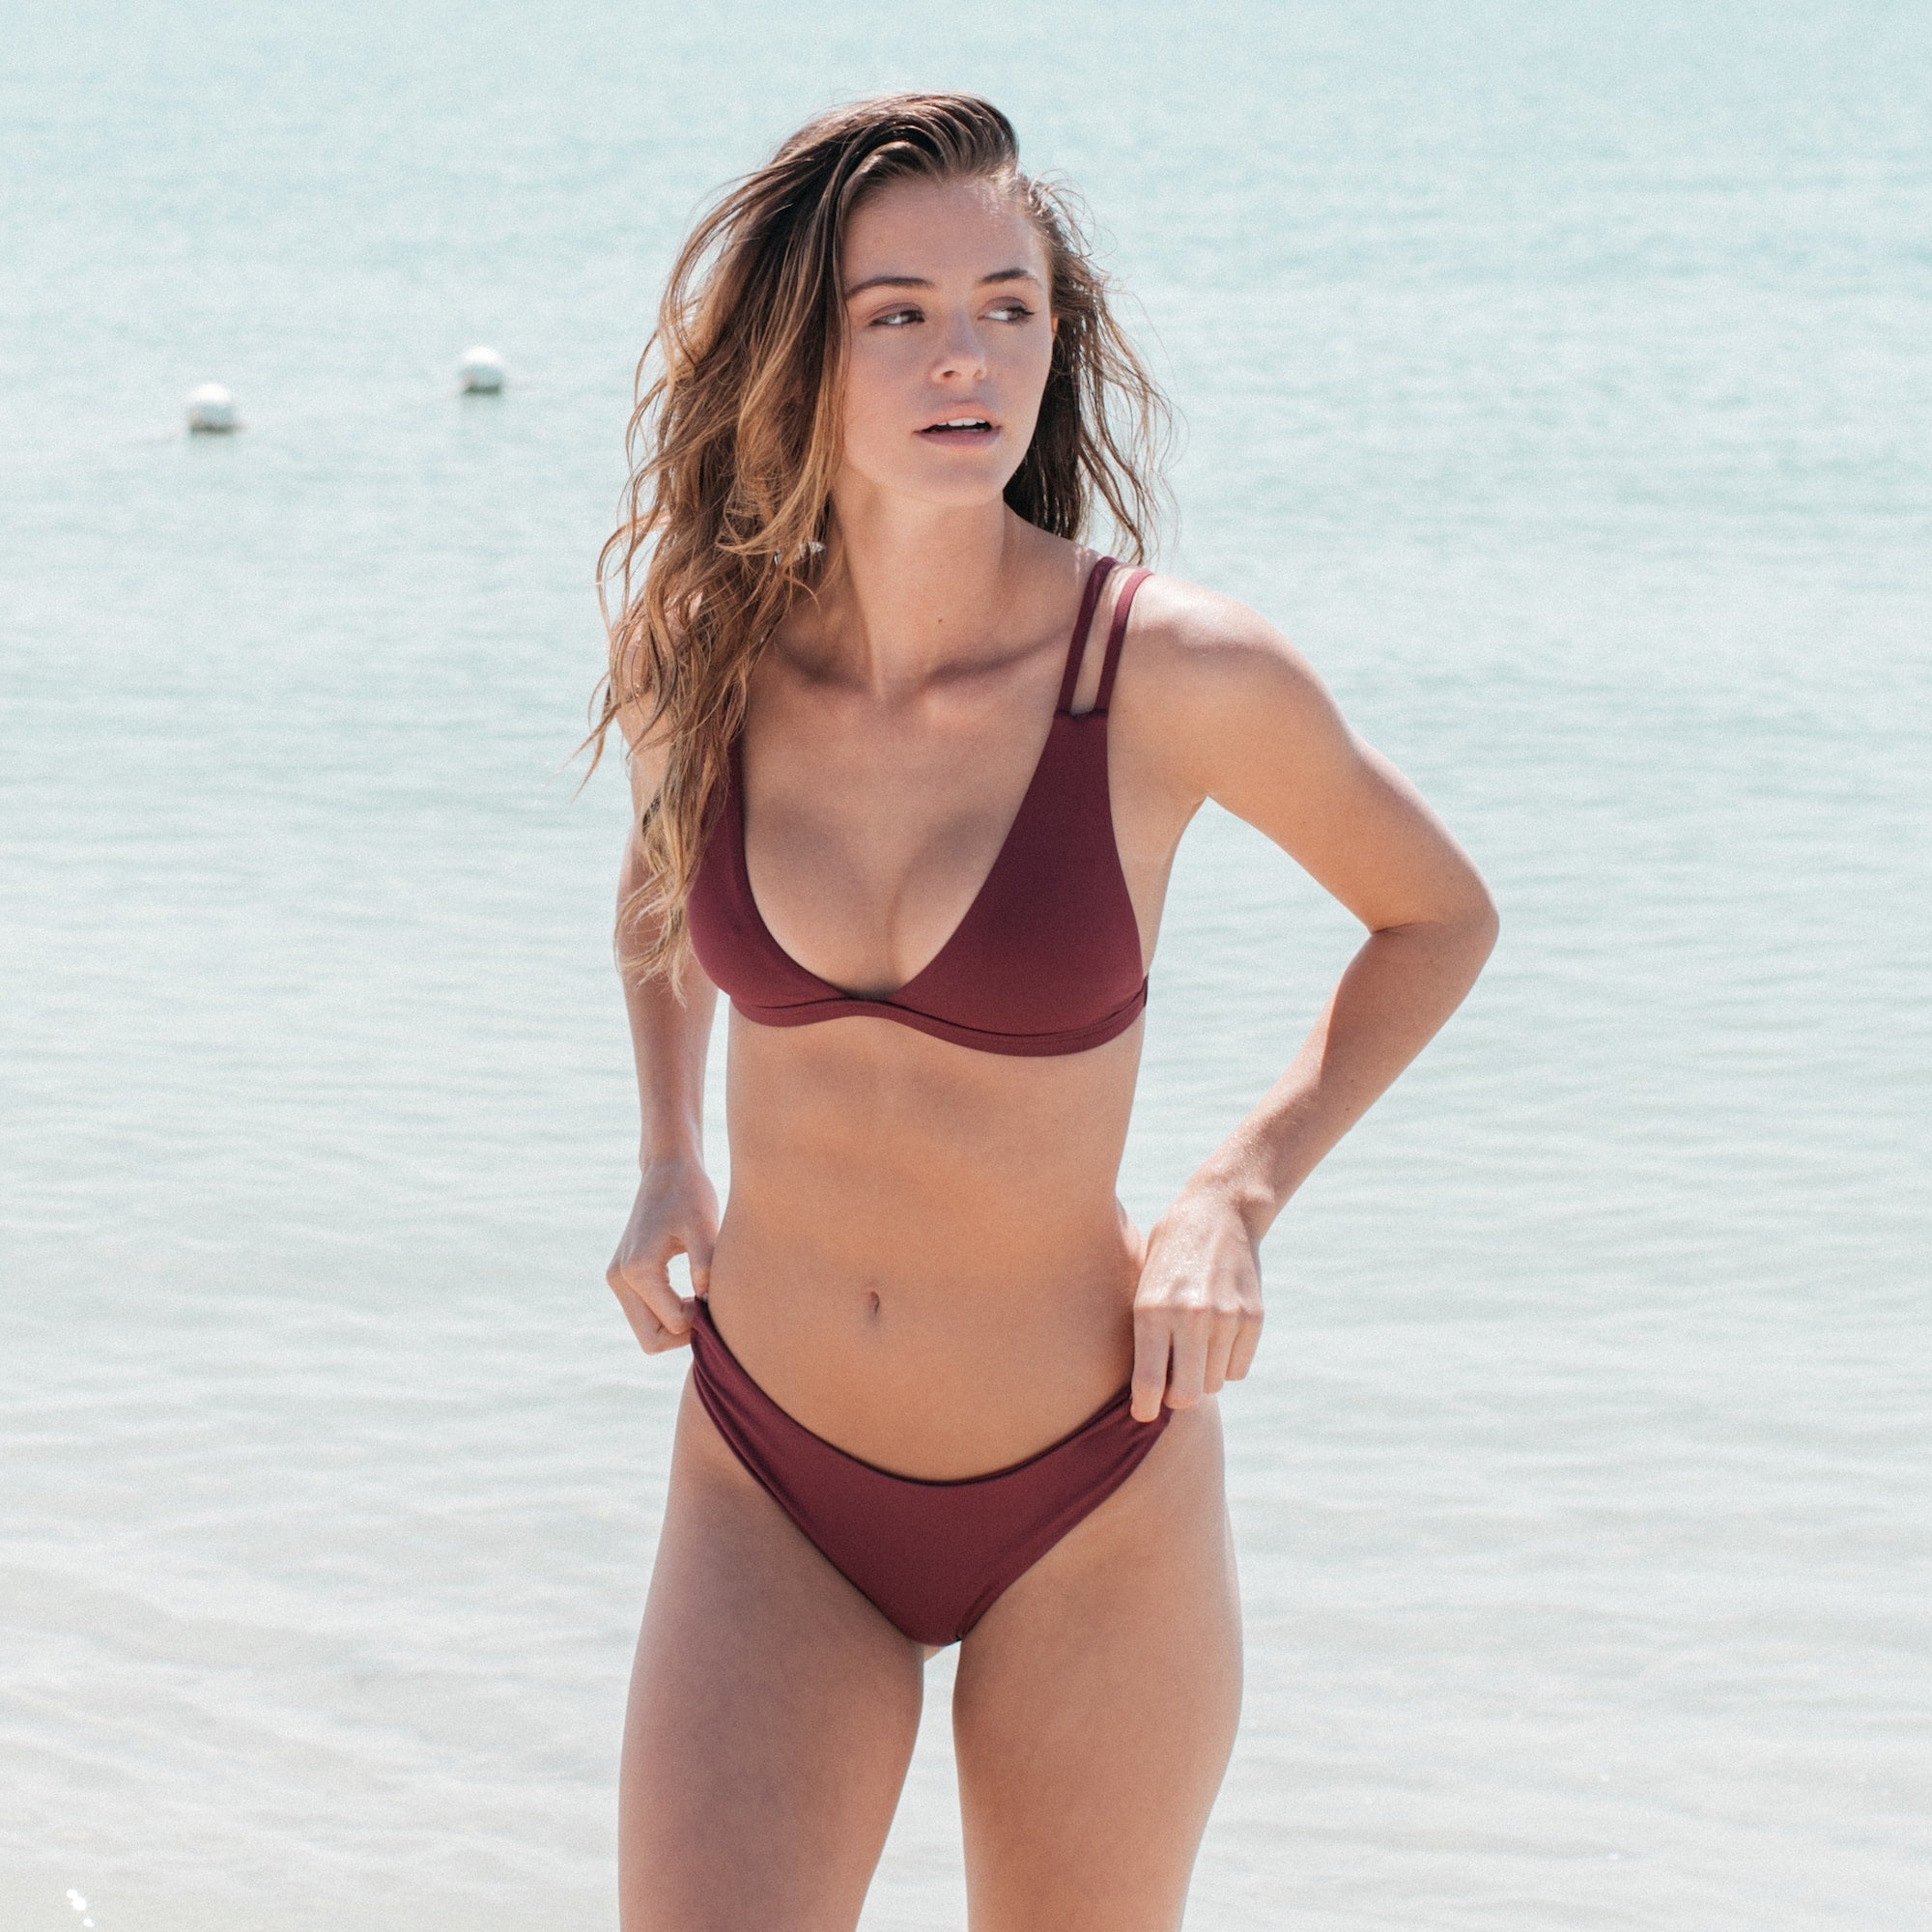 Caravel Bikini Top in Maroon by Tuhkana Swimwear